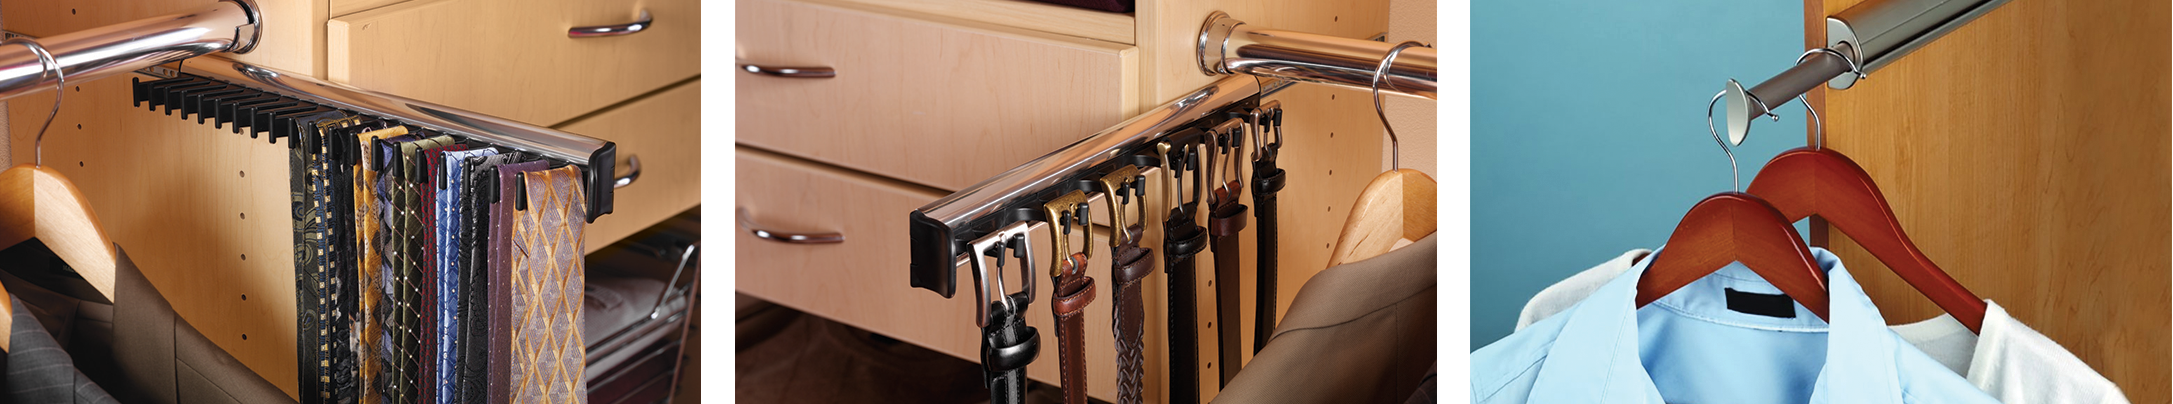 Closet Accessories Tie Rack, Belt Rack & Pant Rack